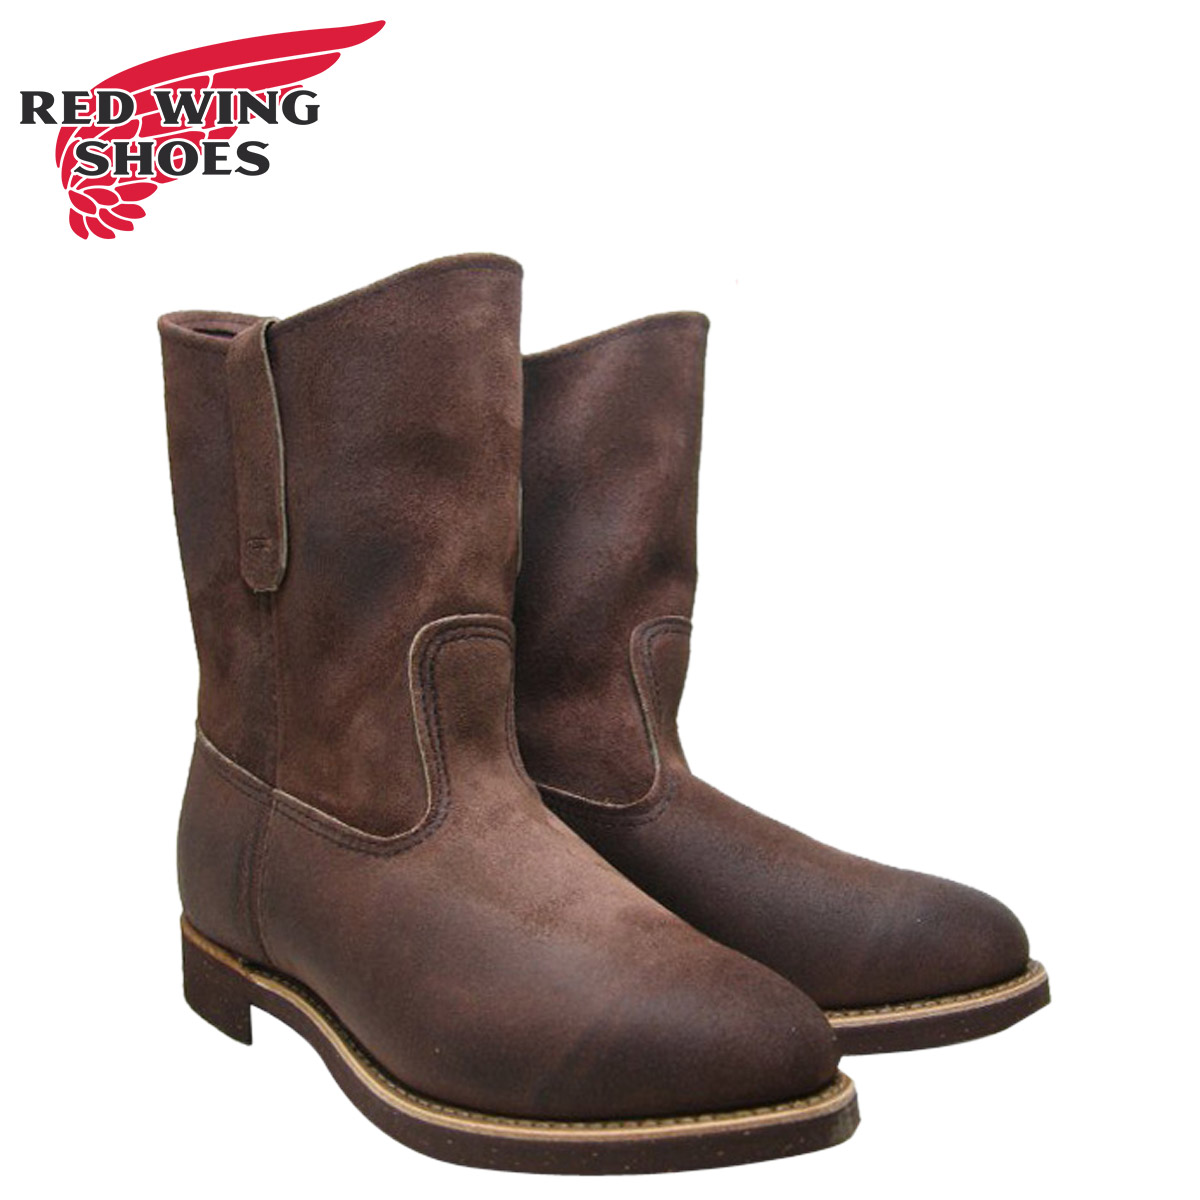 Cheap Red Wing Boots - Cr Boot